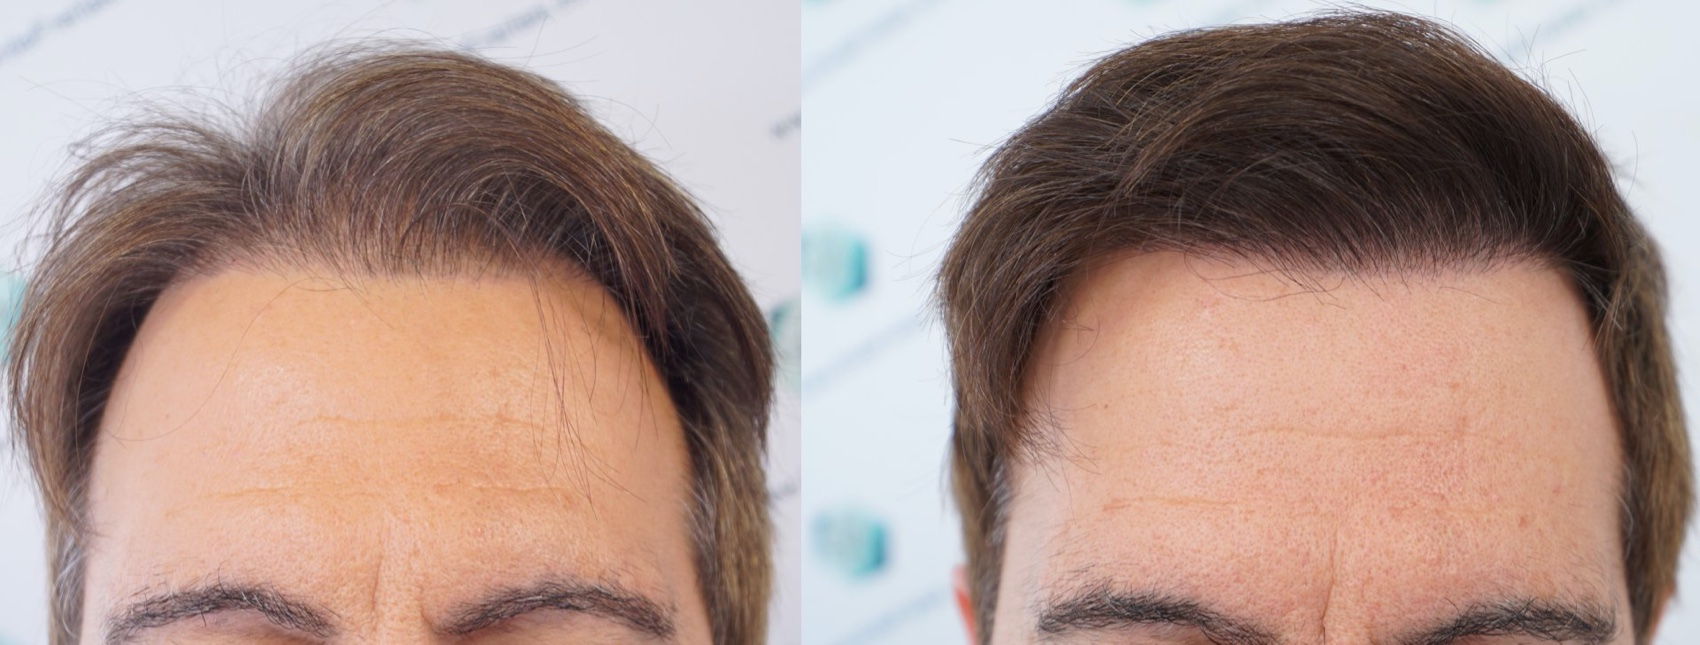 HAIR TRANSPLANT COMPARISON BEFORE AND AFTER